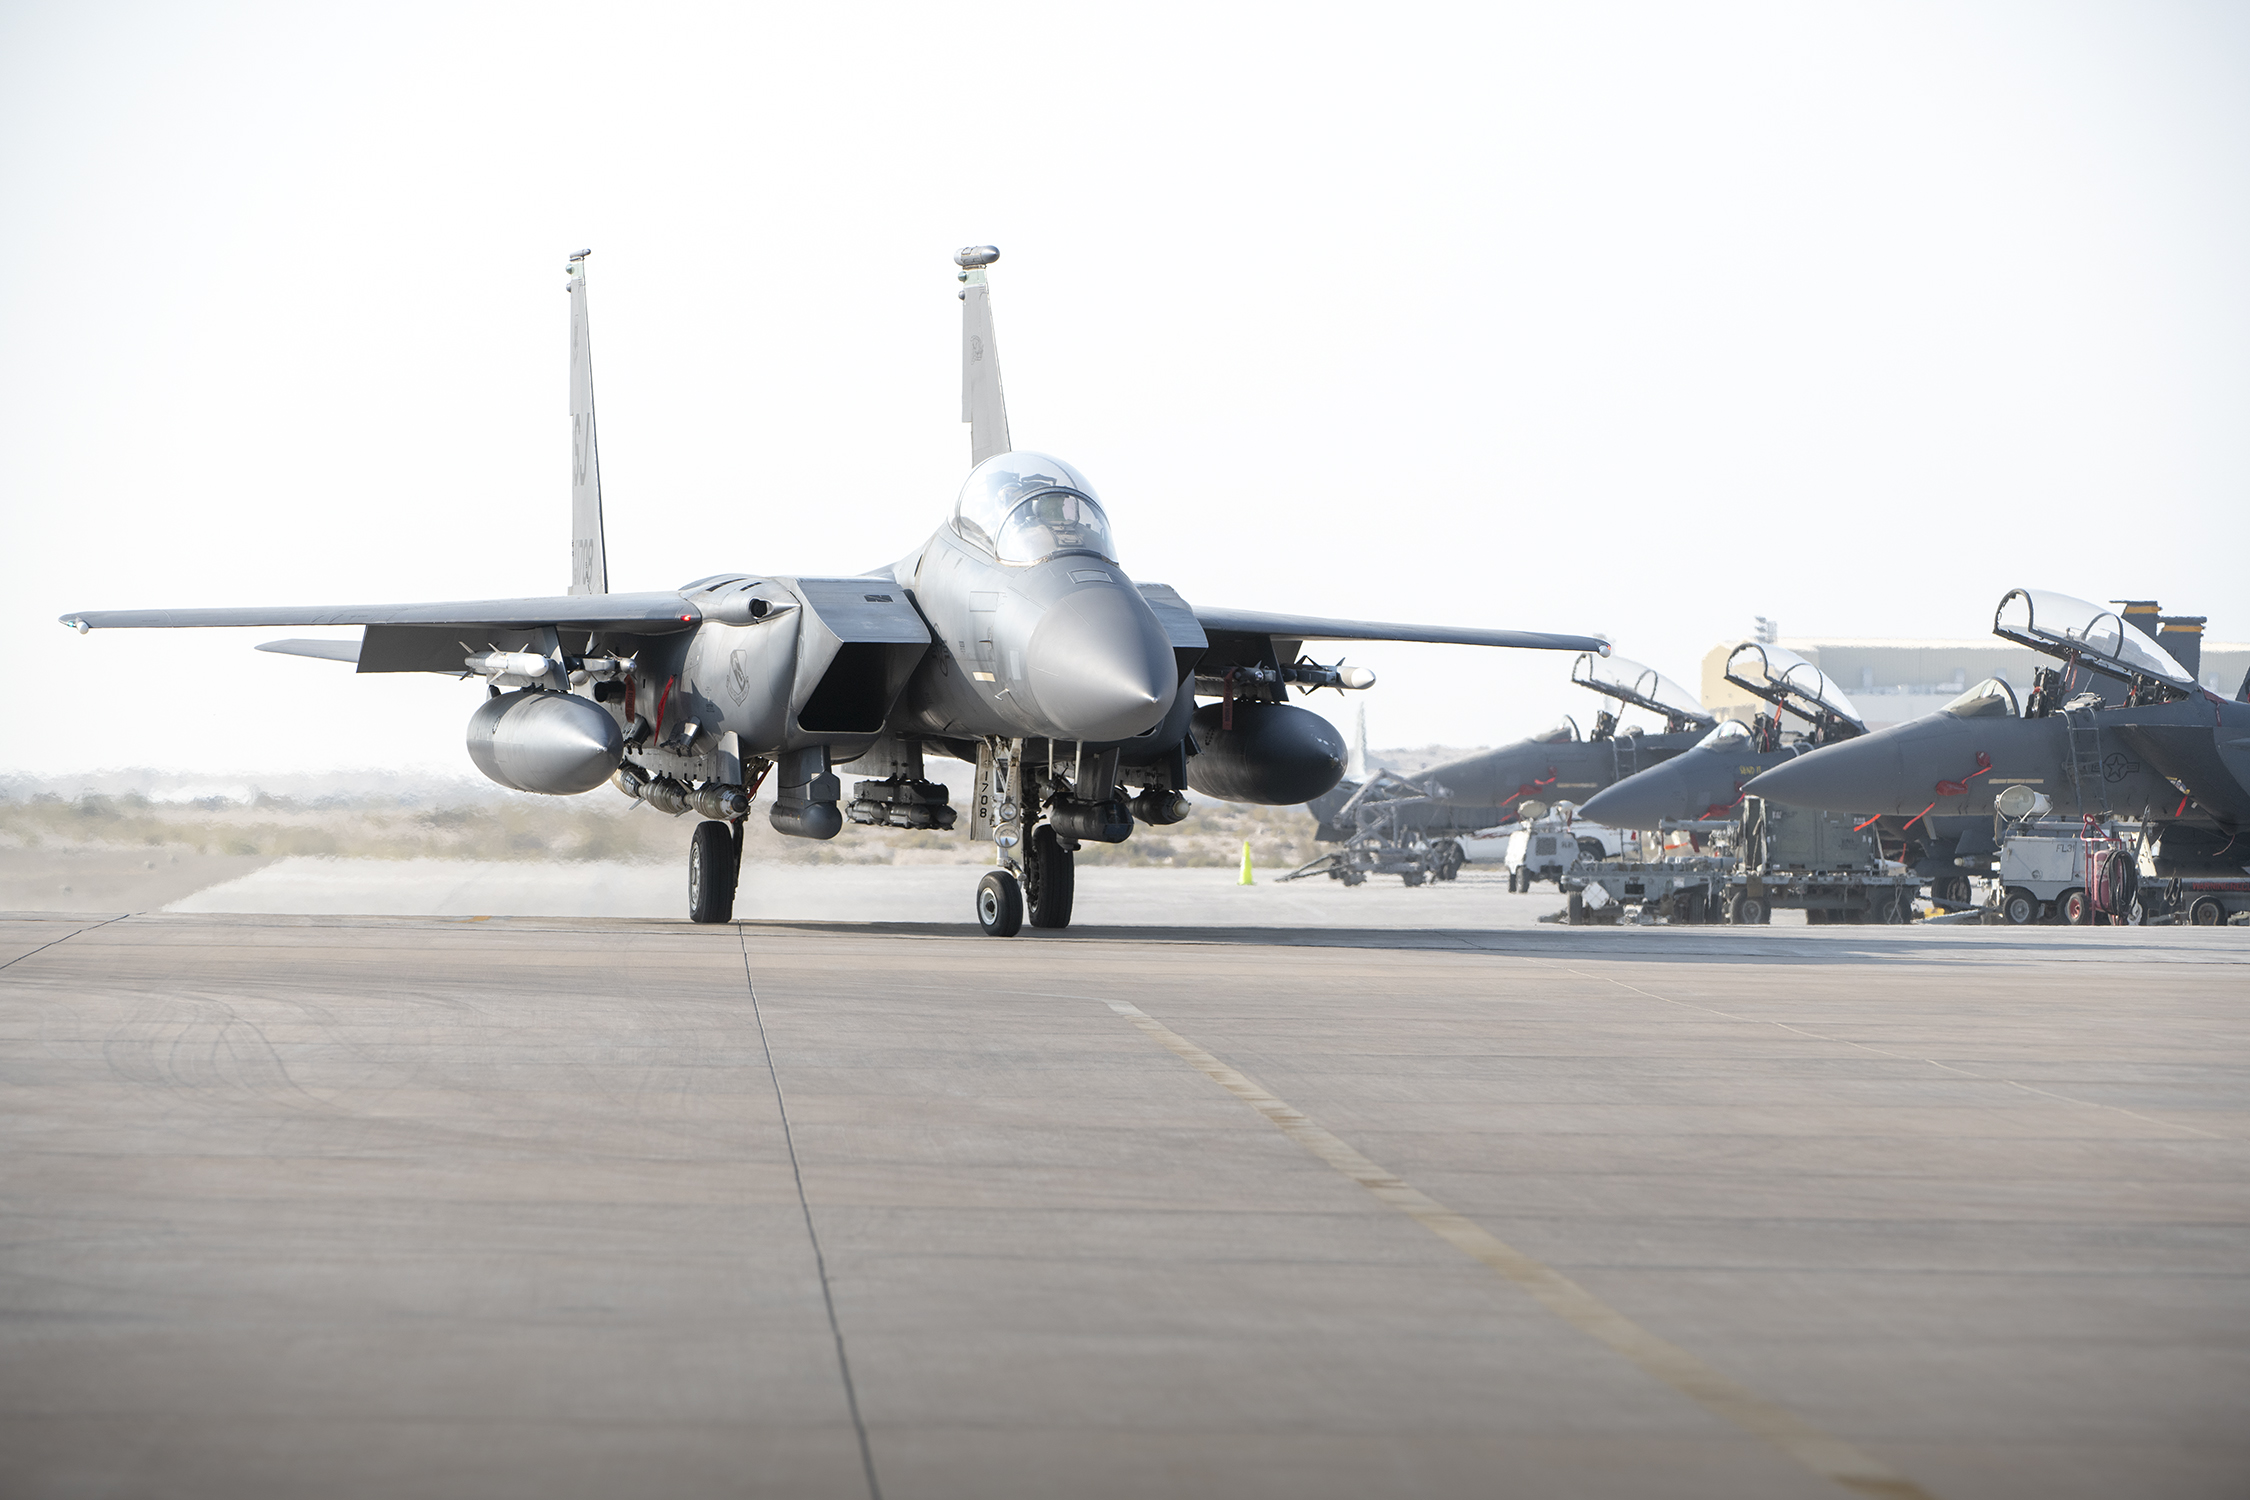 """An F-15E Strike Eagle from the 494th Fighter Squadron taxis to park at Al Dhafra Air Base, United Arab Emirates, Oct. 18. The 494th """"Panthers"""" deployed from the 48th Fighter Wing, RAF Lakenheath, England. (Tech. Sgt. Kat Justen/Air Force)"""